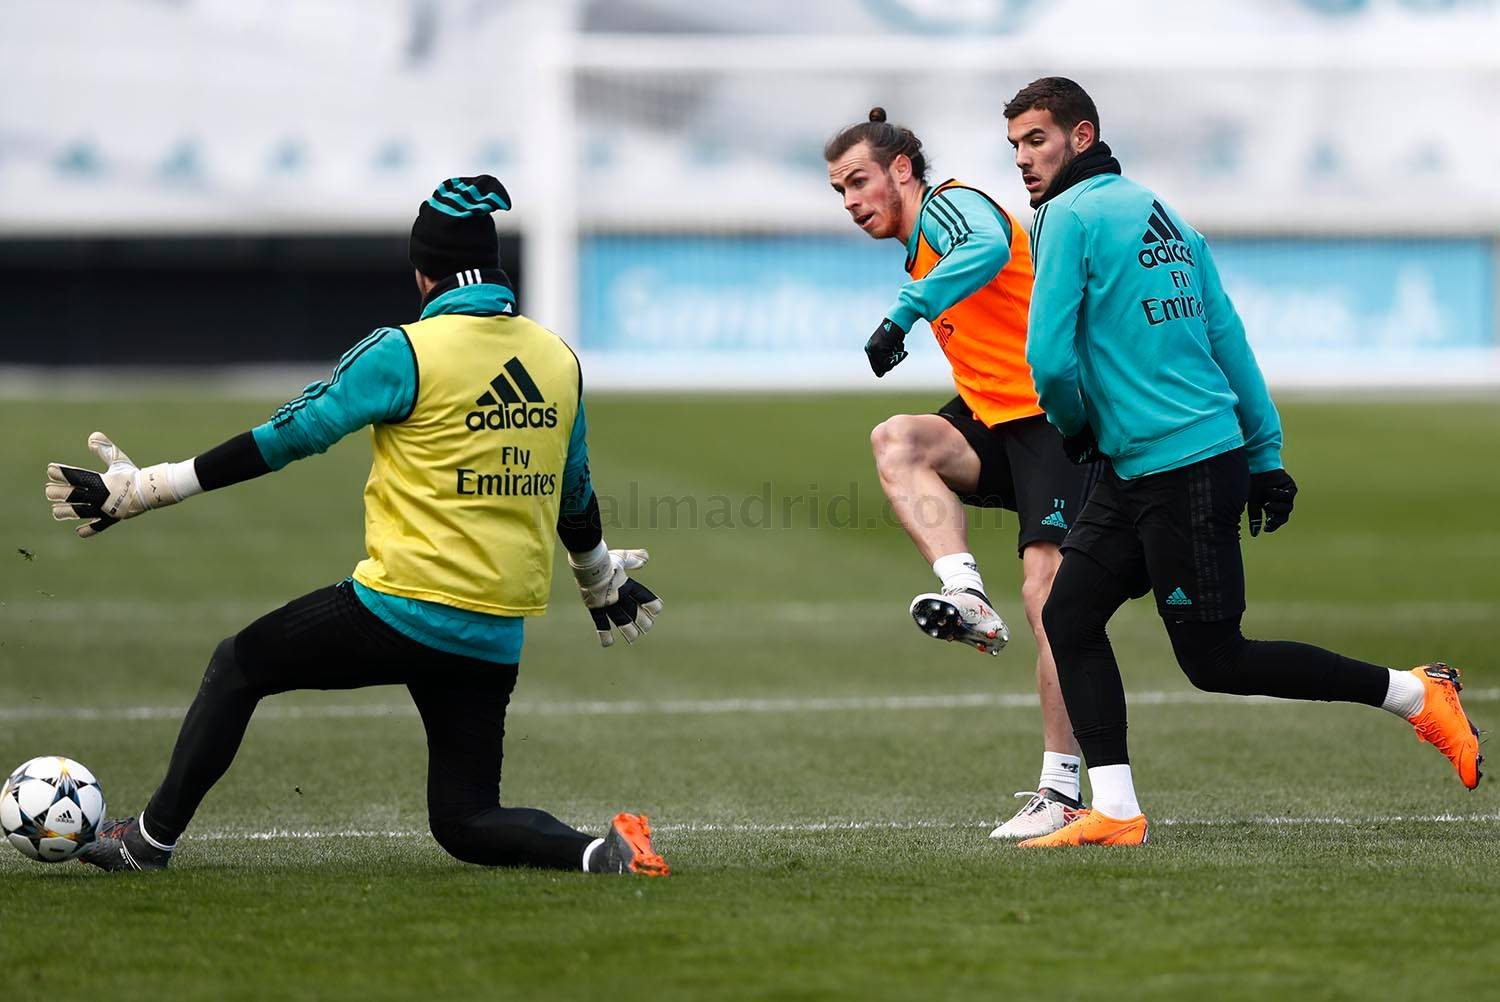 Real Madrid - Entrenamiento del Real Madrid - 12-02-2018